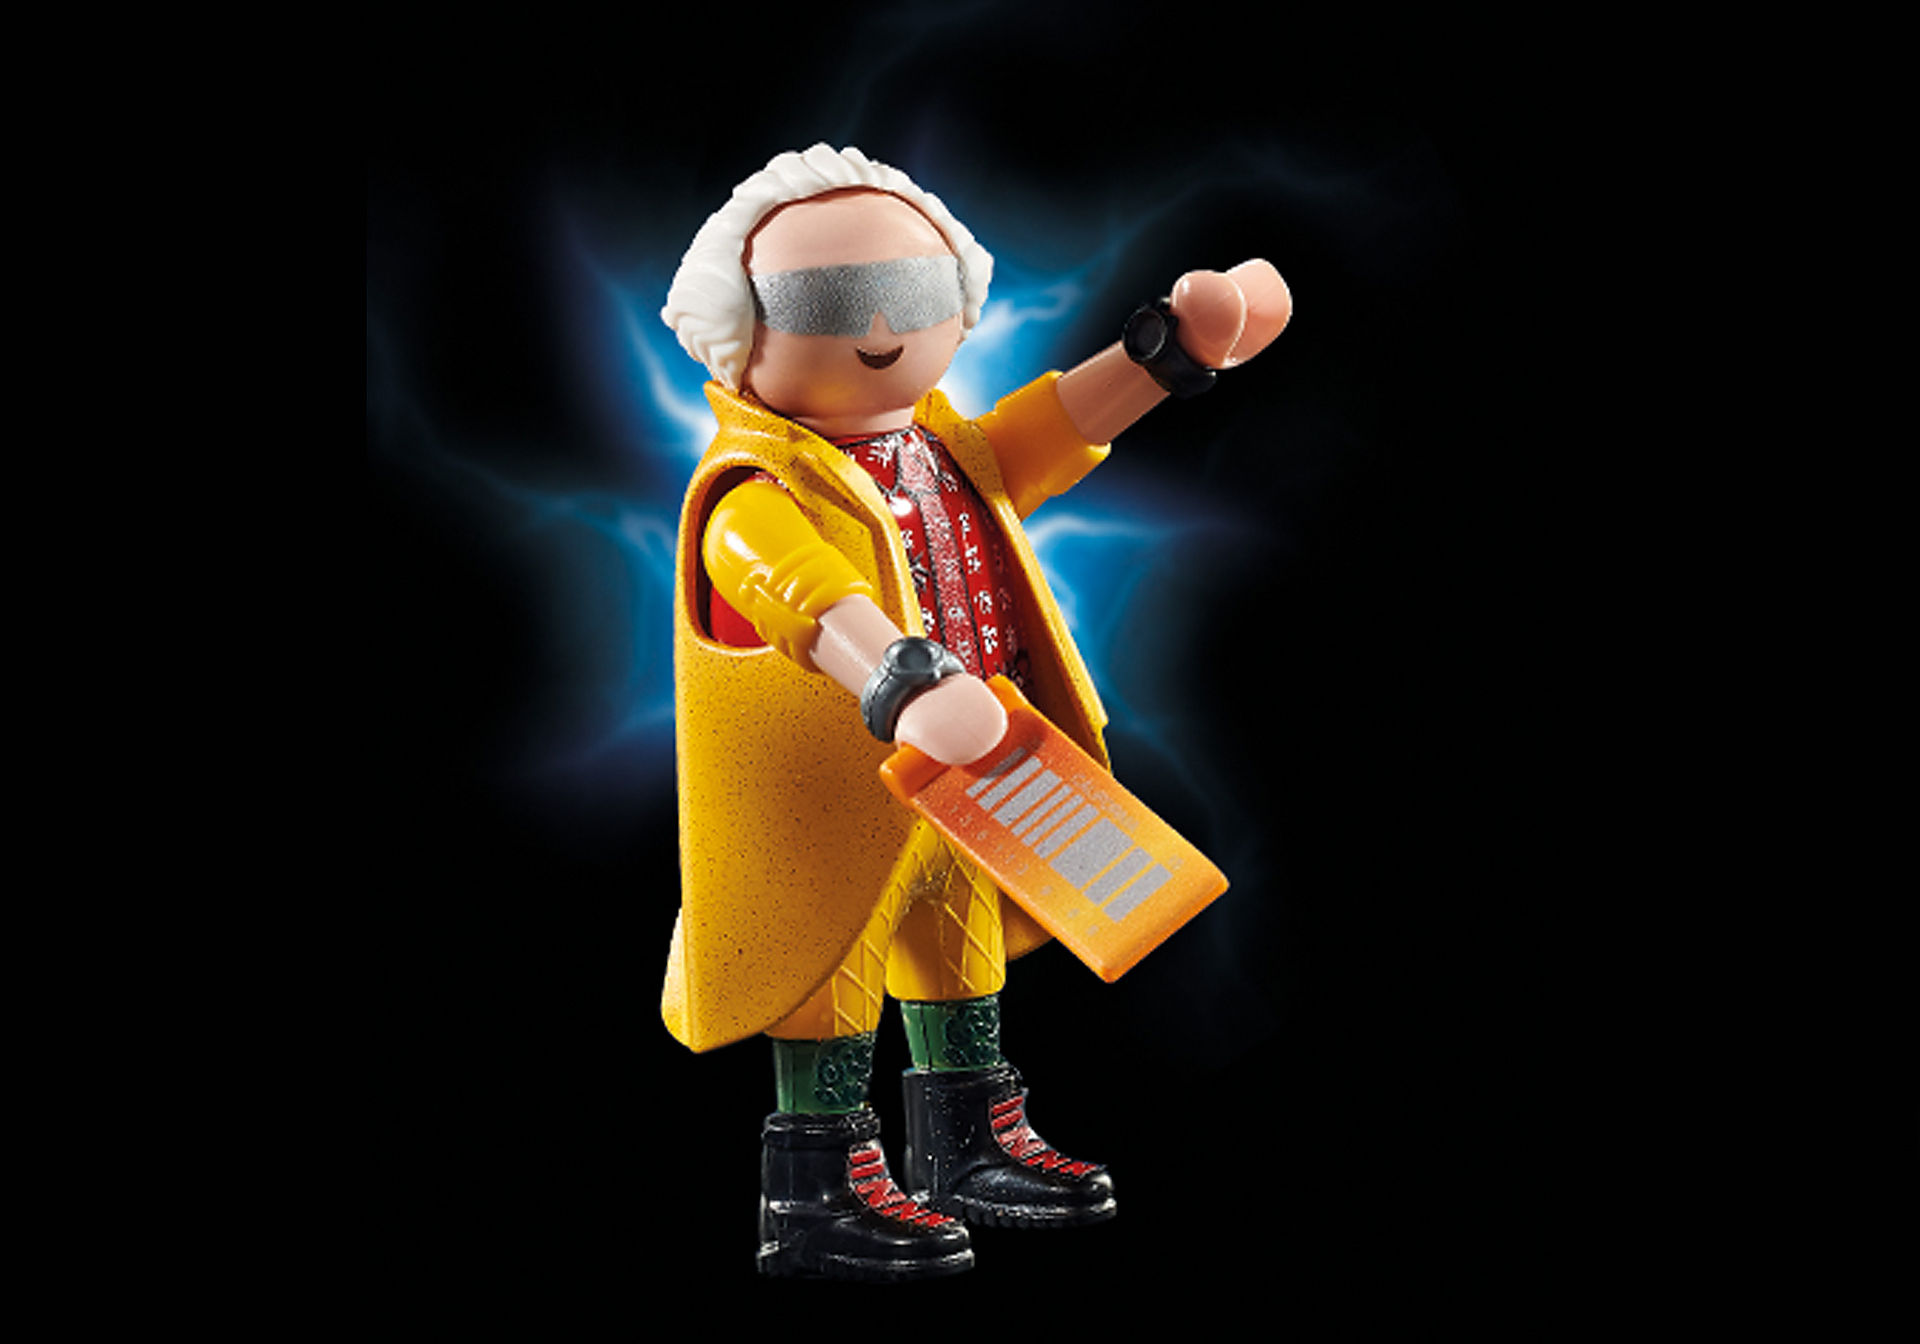 70634 Back to the Future Part II Verfolgung mit Hoverboard zoom image8